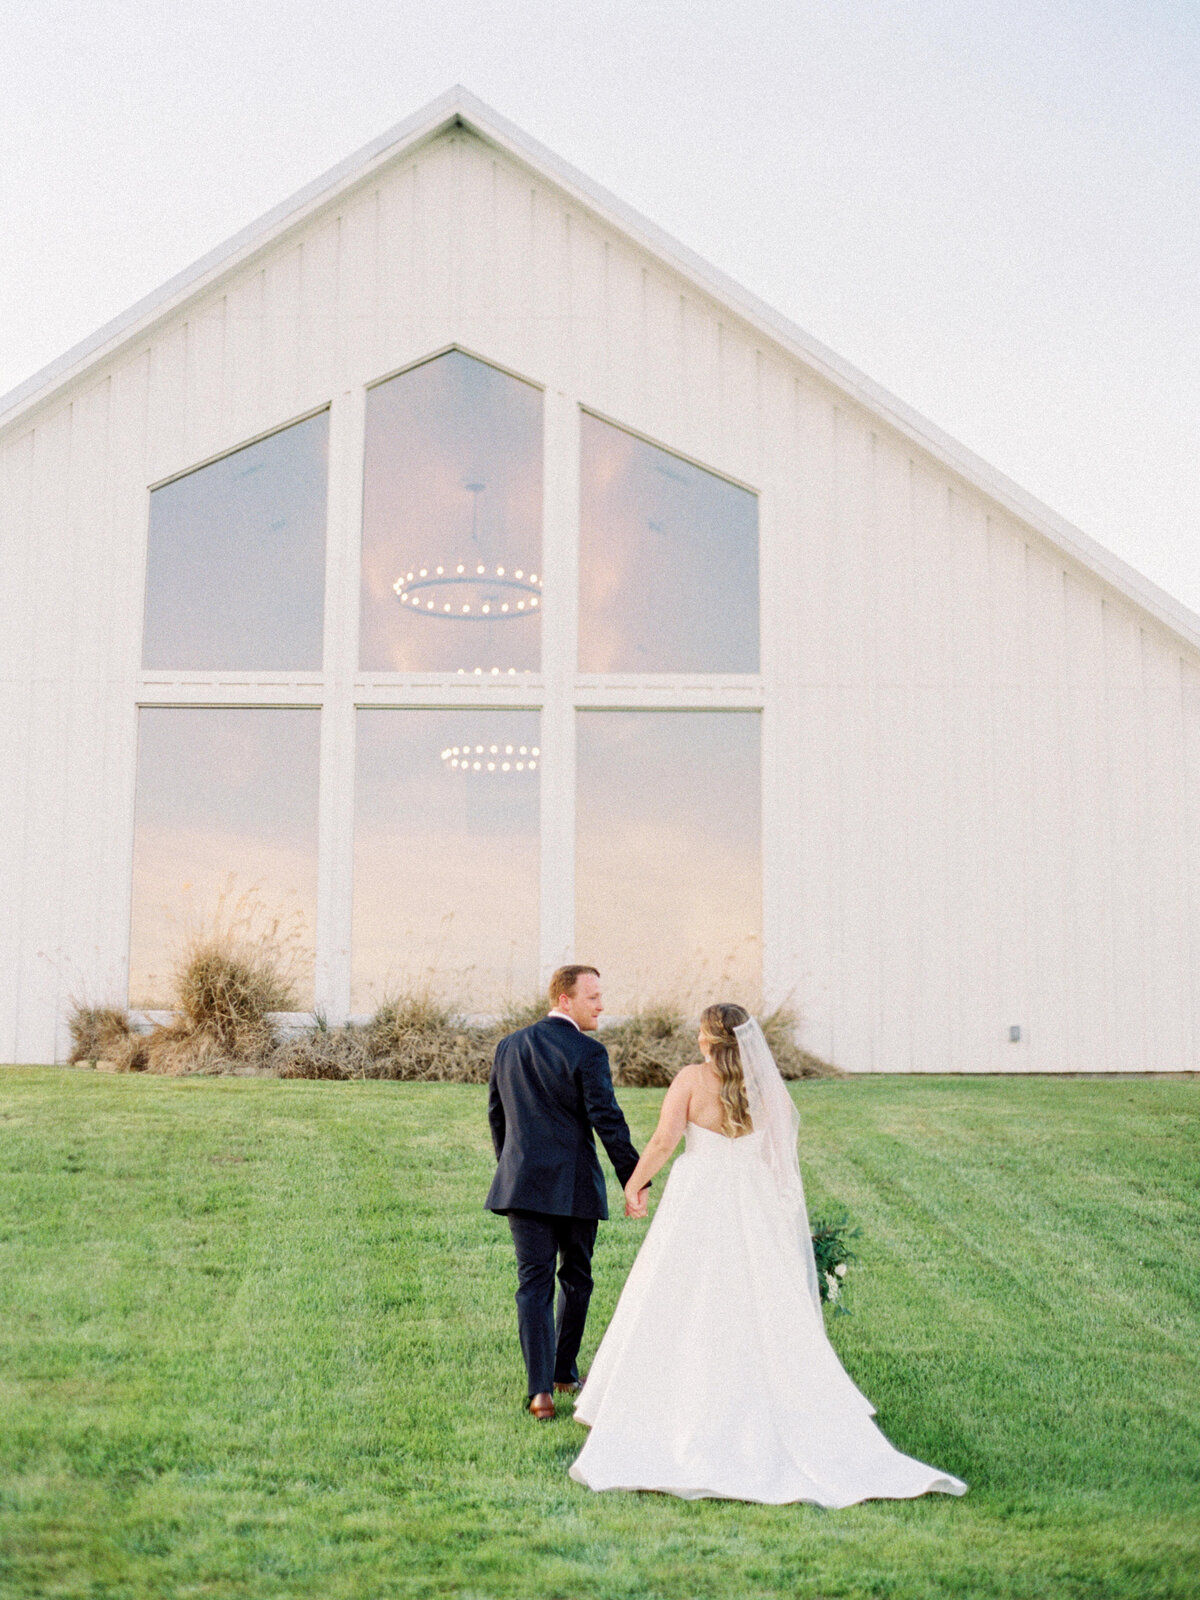 the-farmhouse-wedding-houston-texas-wedding-photographer-mackenzie-reiter-photography-89